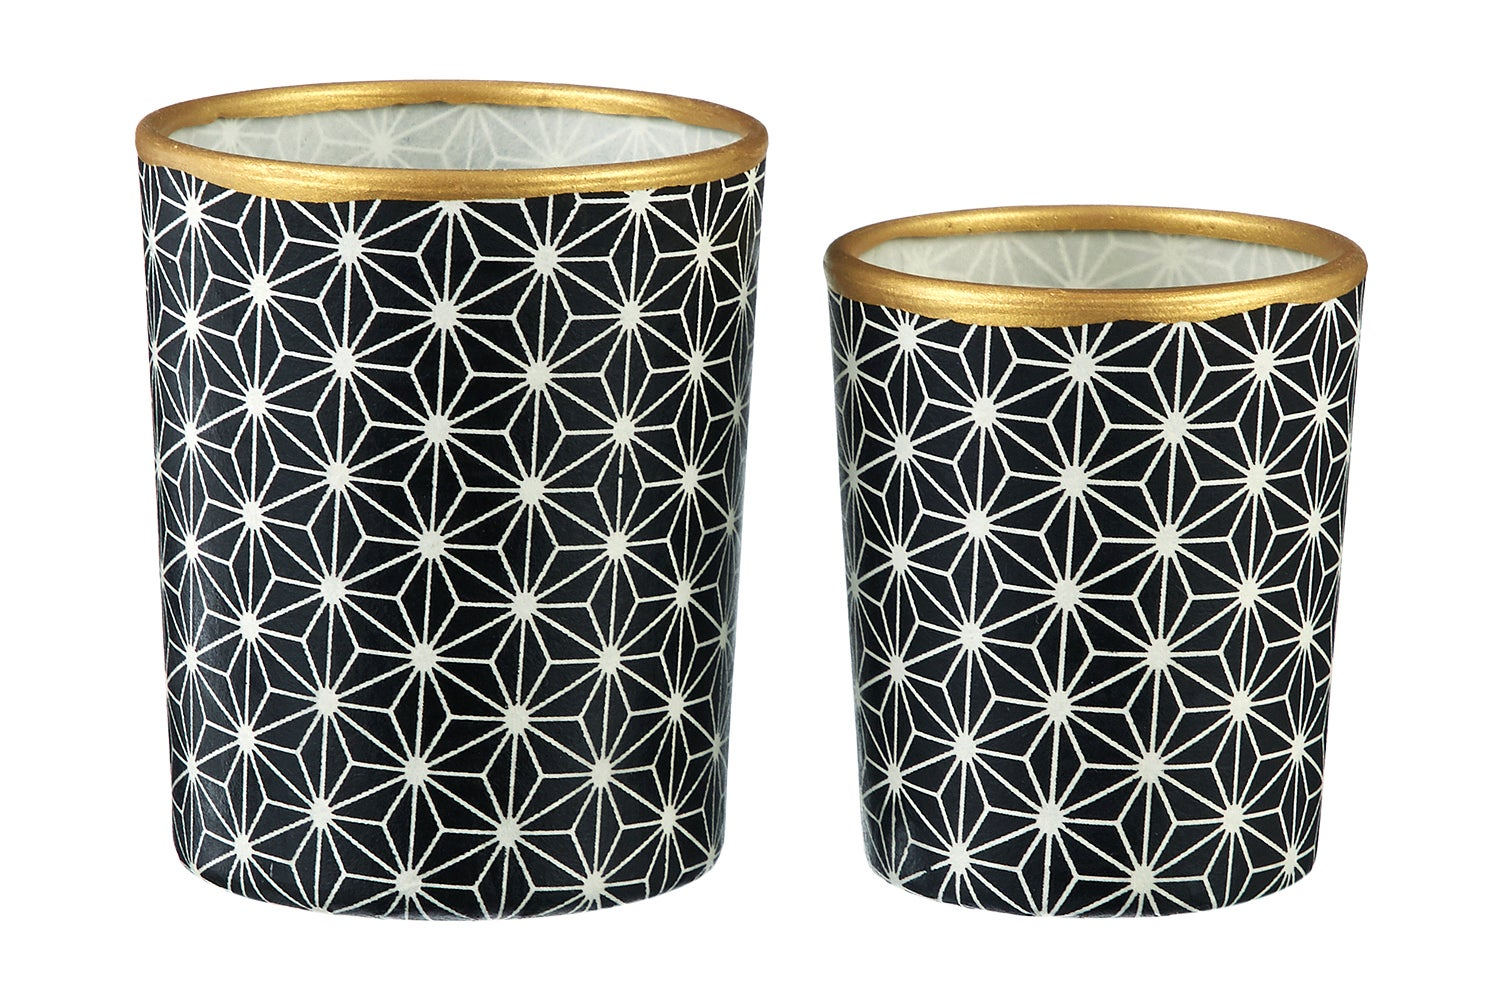 Image of Candle holders * Black stars